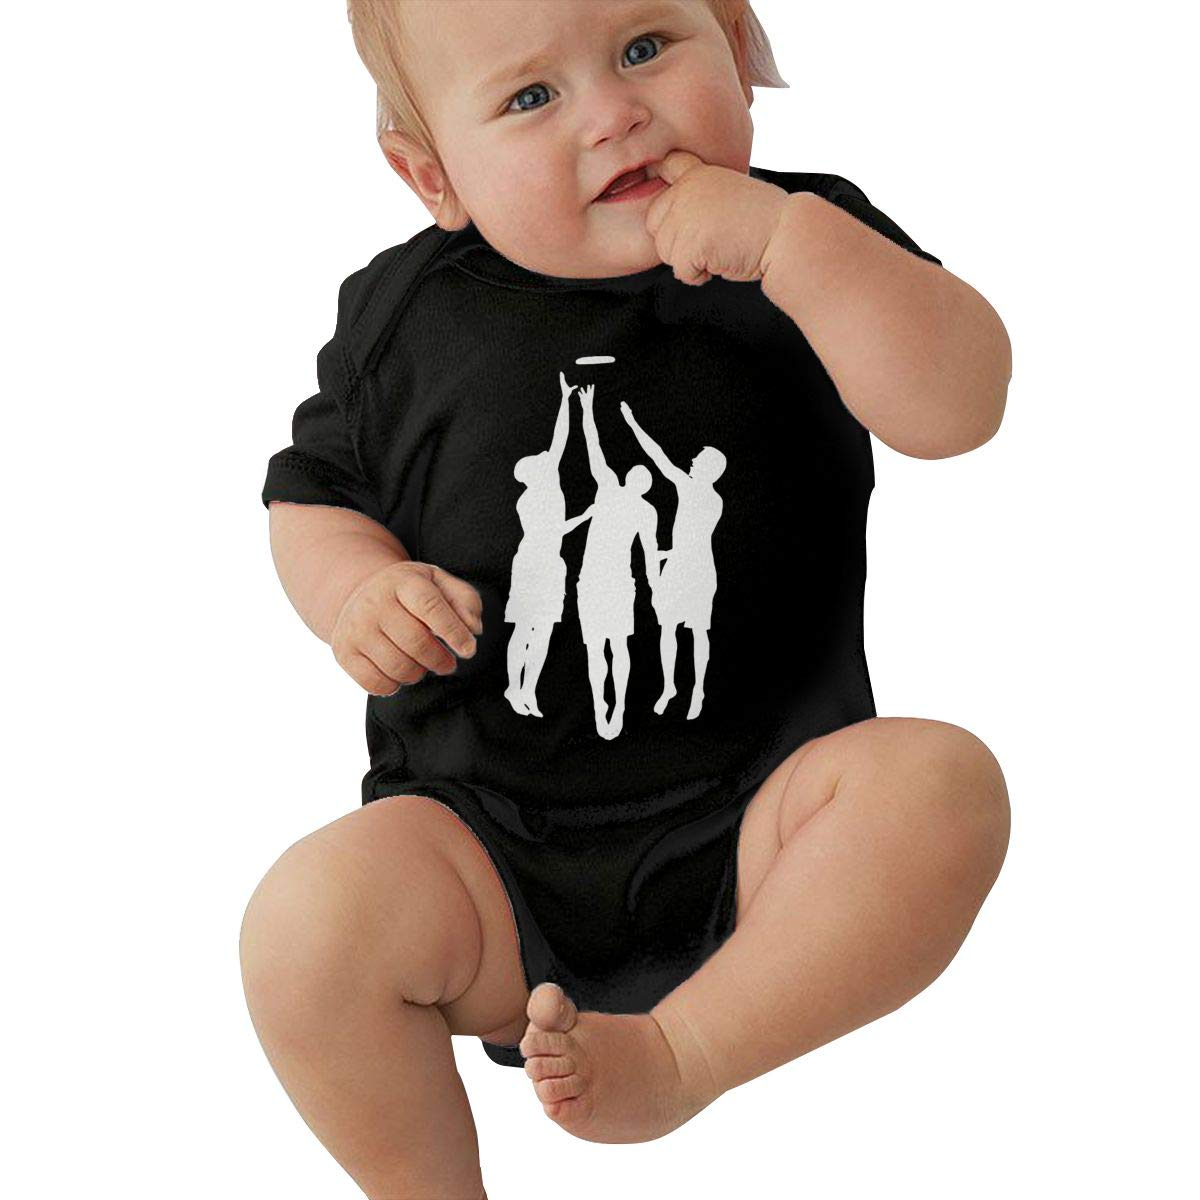 Toddler Baby Girl Boy Ultimate Frisbee3 OutfitsBodysuit Jumpsuit Short Sleeve Bodysuit Tops Clothes